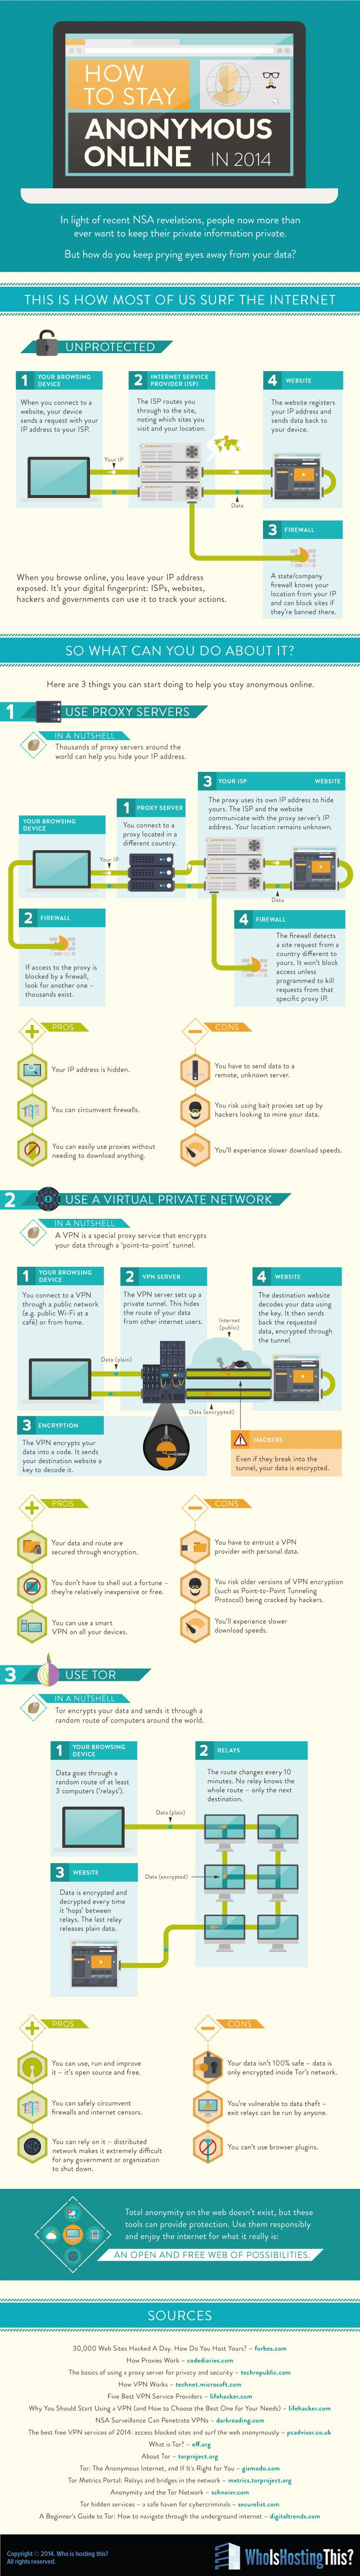 How to Stay Anonymous Online in 2014   #infographic #Internet #HowTo